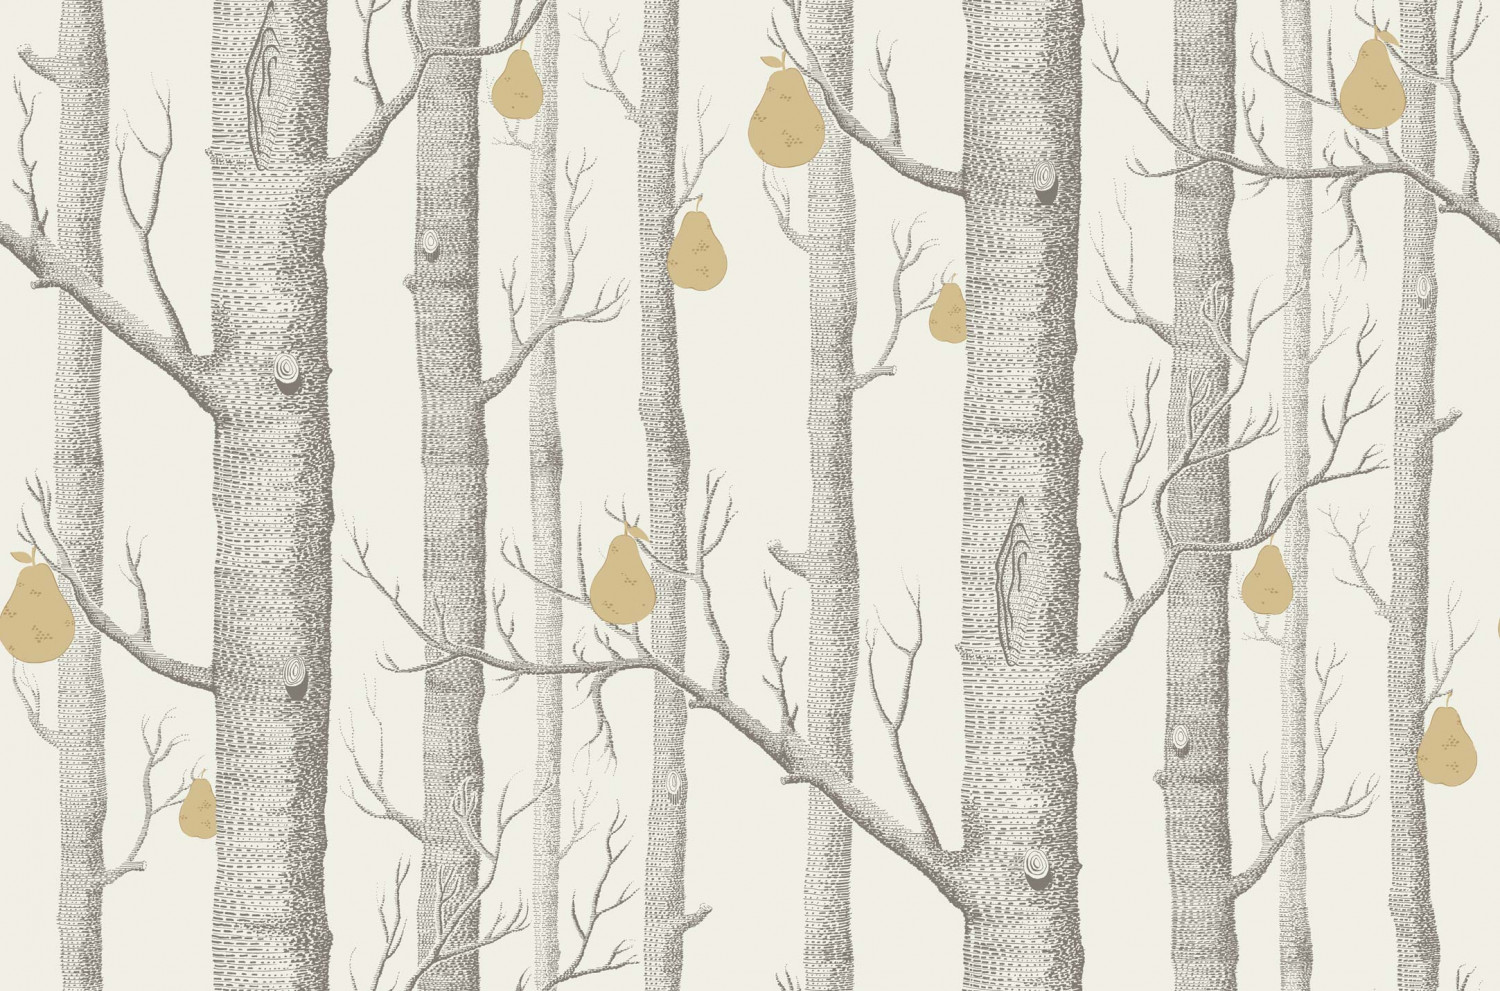 Cole And Son Woods cole & son - contemporary restyled - woods & pears 95/5032